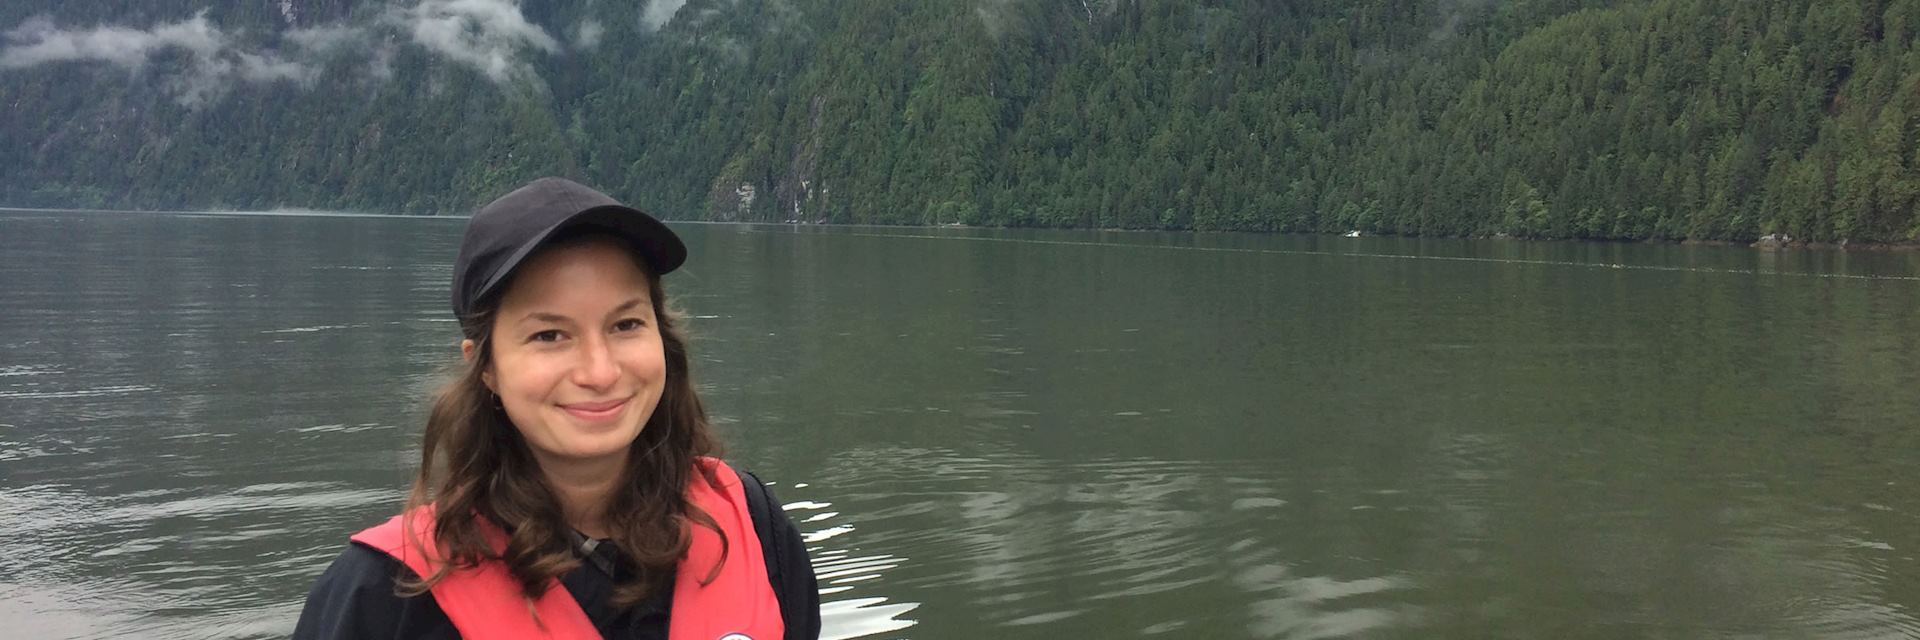 Emily at Spirit Bear Lodge in the Great Bear Rainforest, BC, Canada